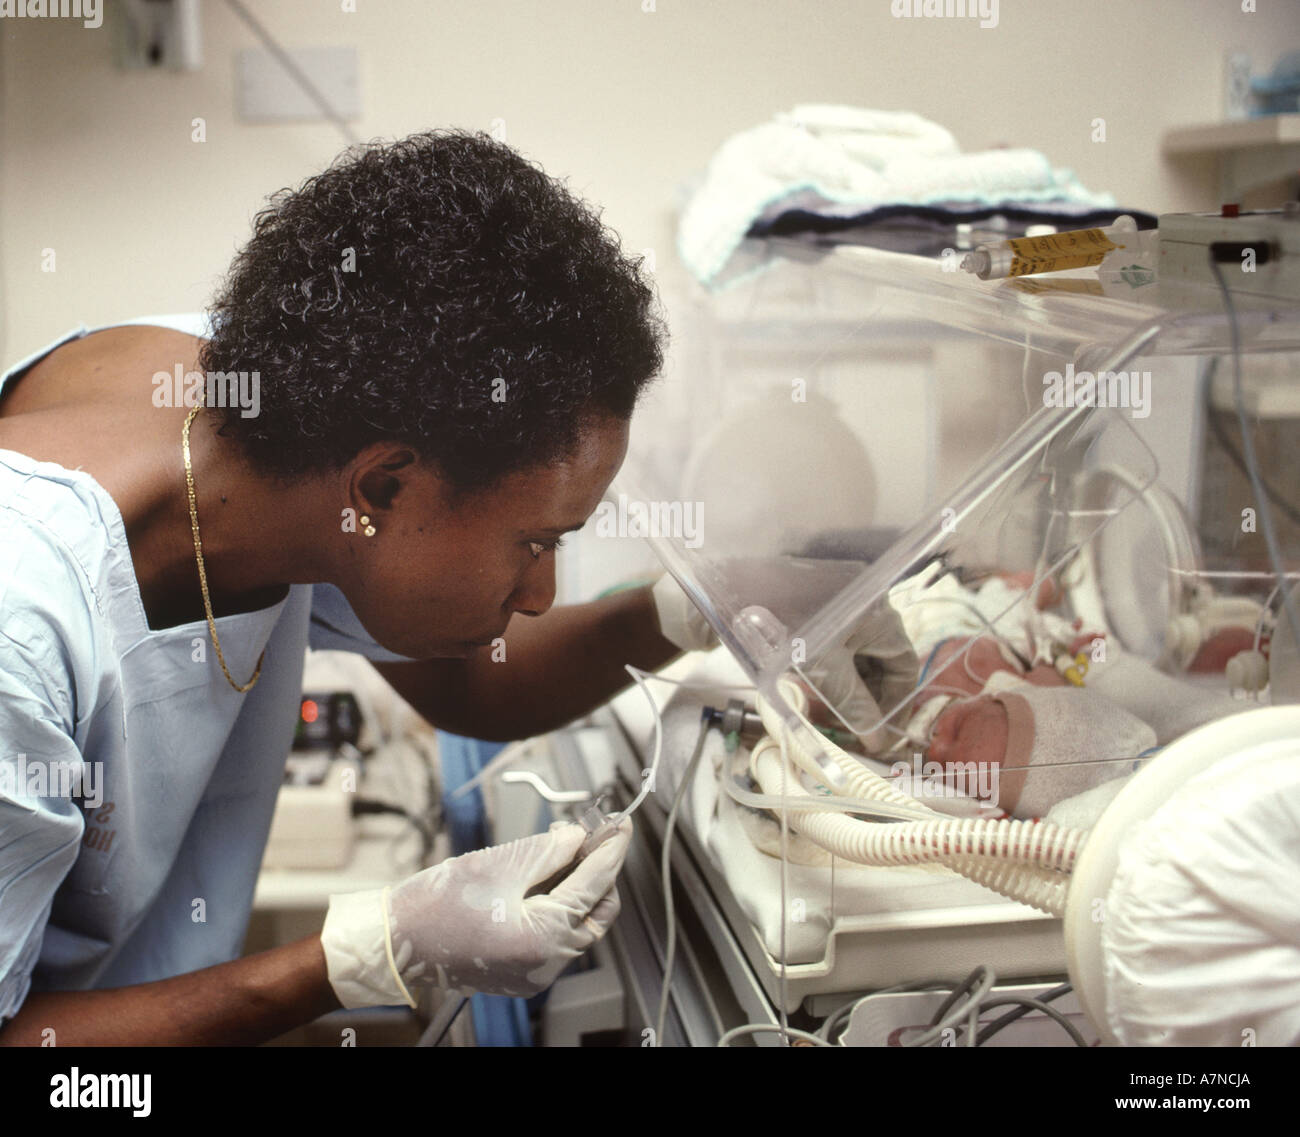 neo-natal unit in hospital with nurse attending to a baby in incubator - Stock Image